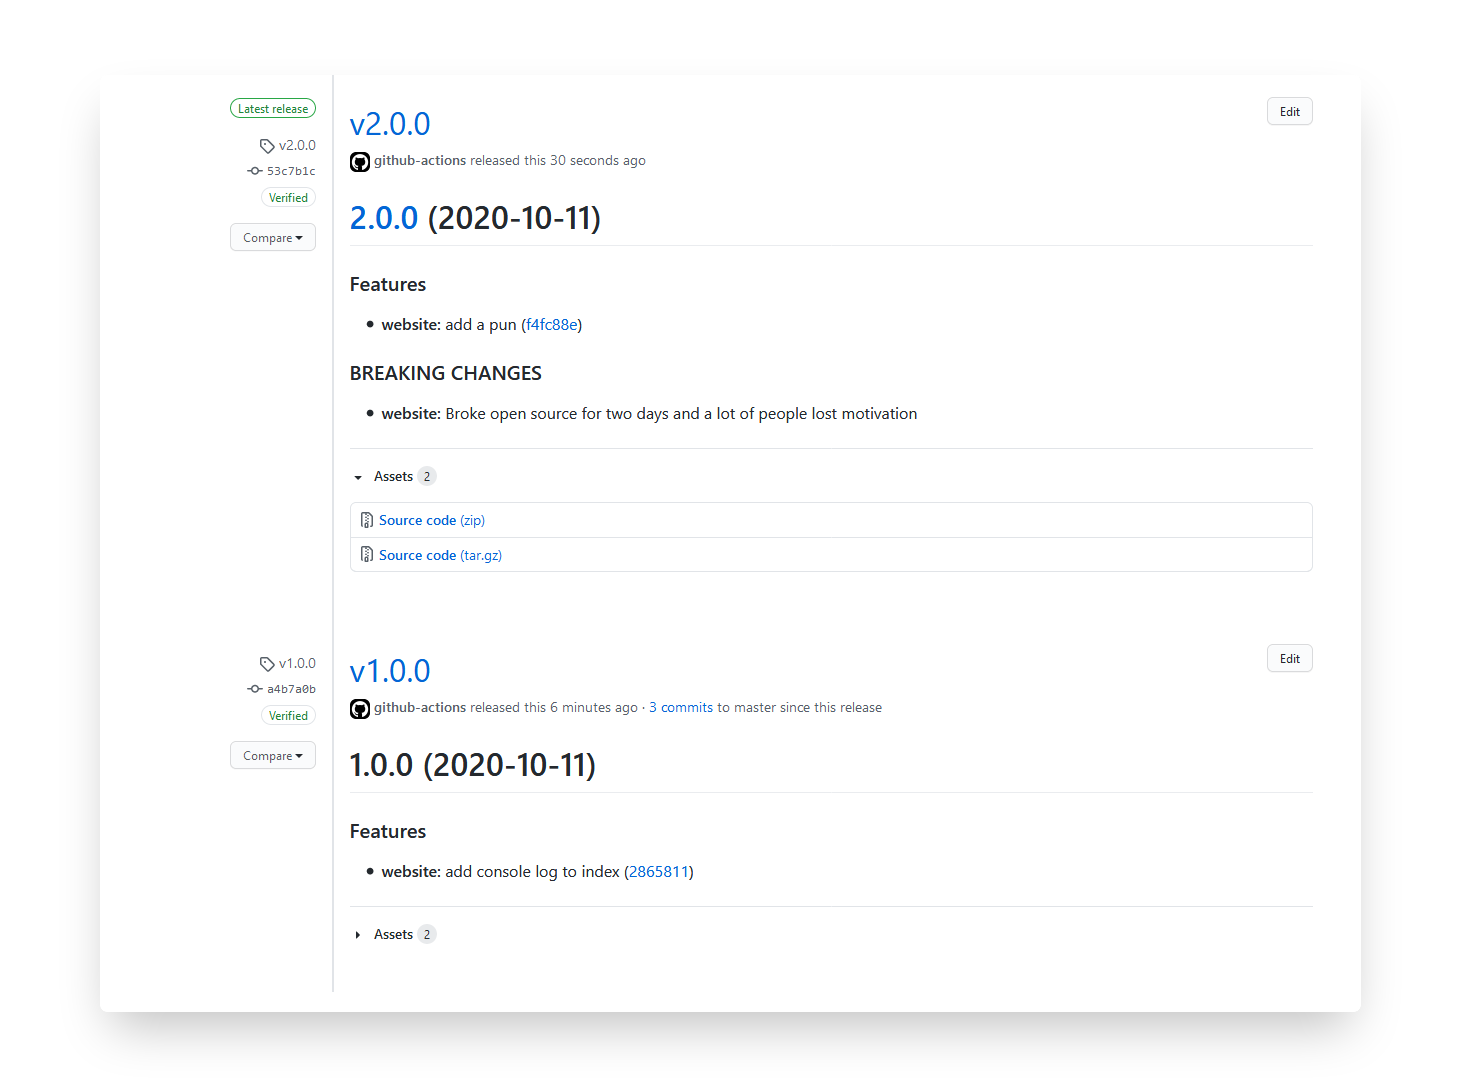 Showing the GitHub releases screen for a project with an example that shows a version 1.0.0 and 2.0.0, both with release notes outlining features and breaking changes.